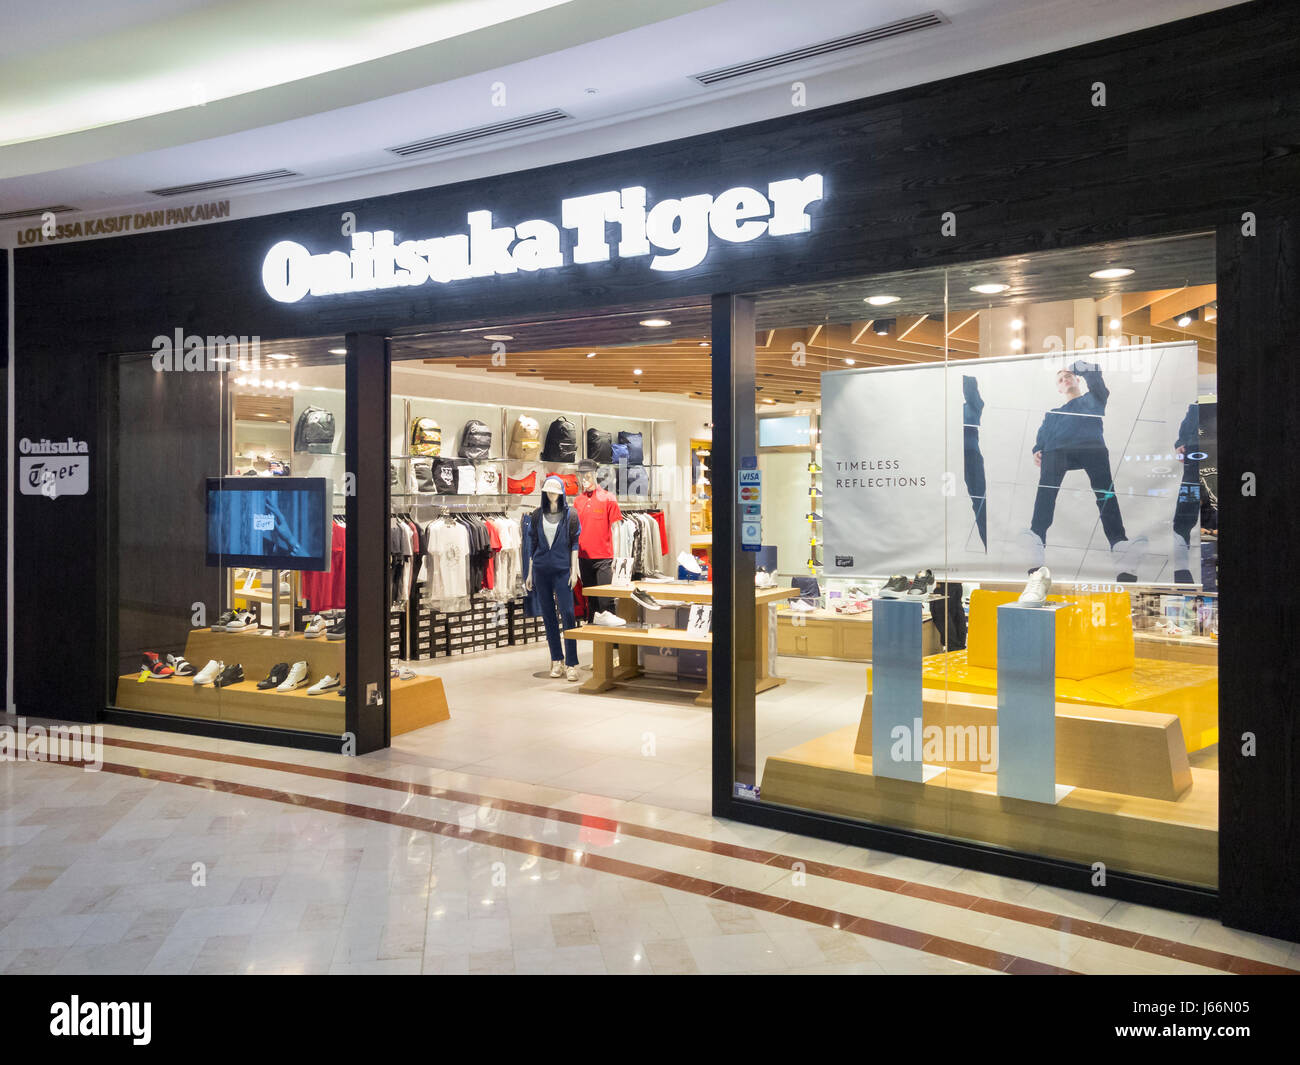 on sale 91b5f 9ebb8 Onitsuka tiger shop, Malaysia Stock Photo: 141519061 - Alamy